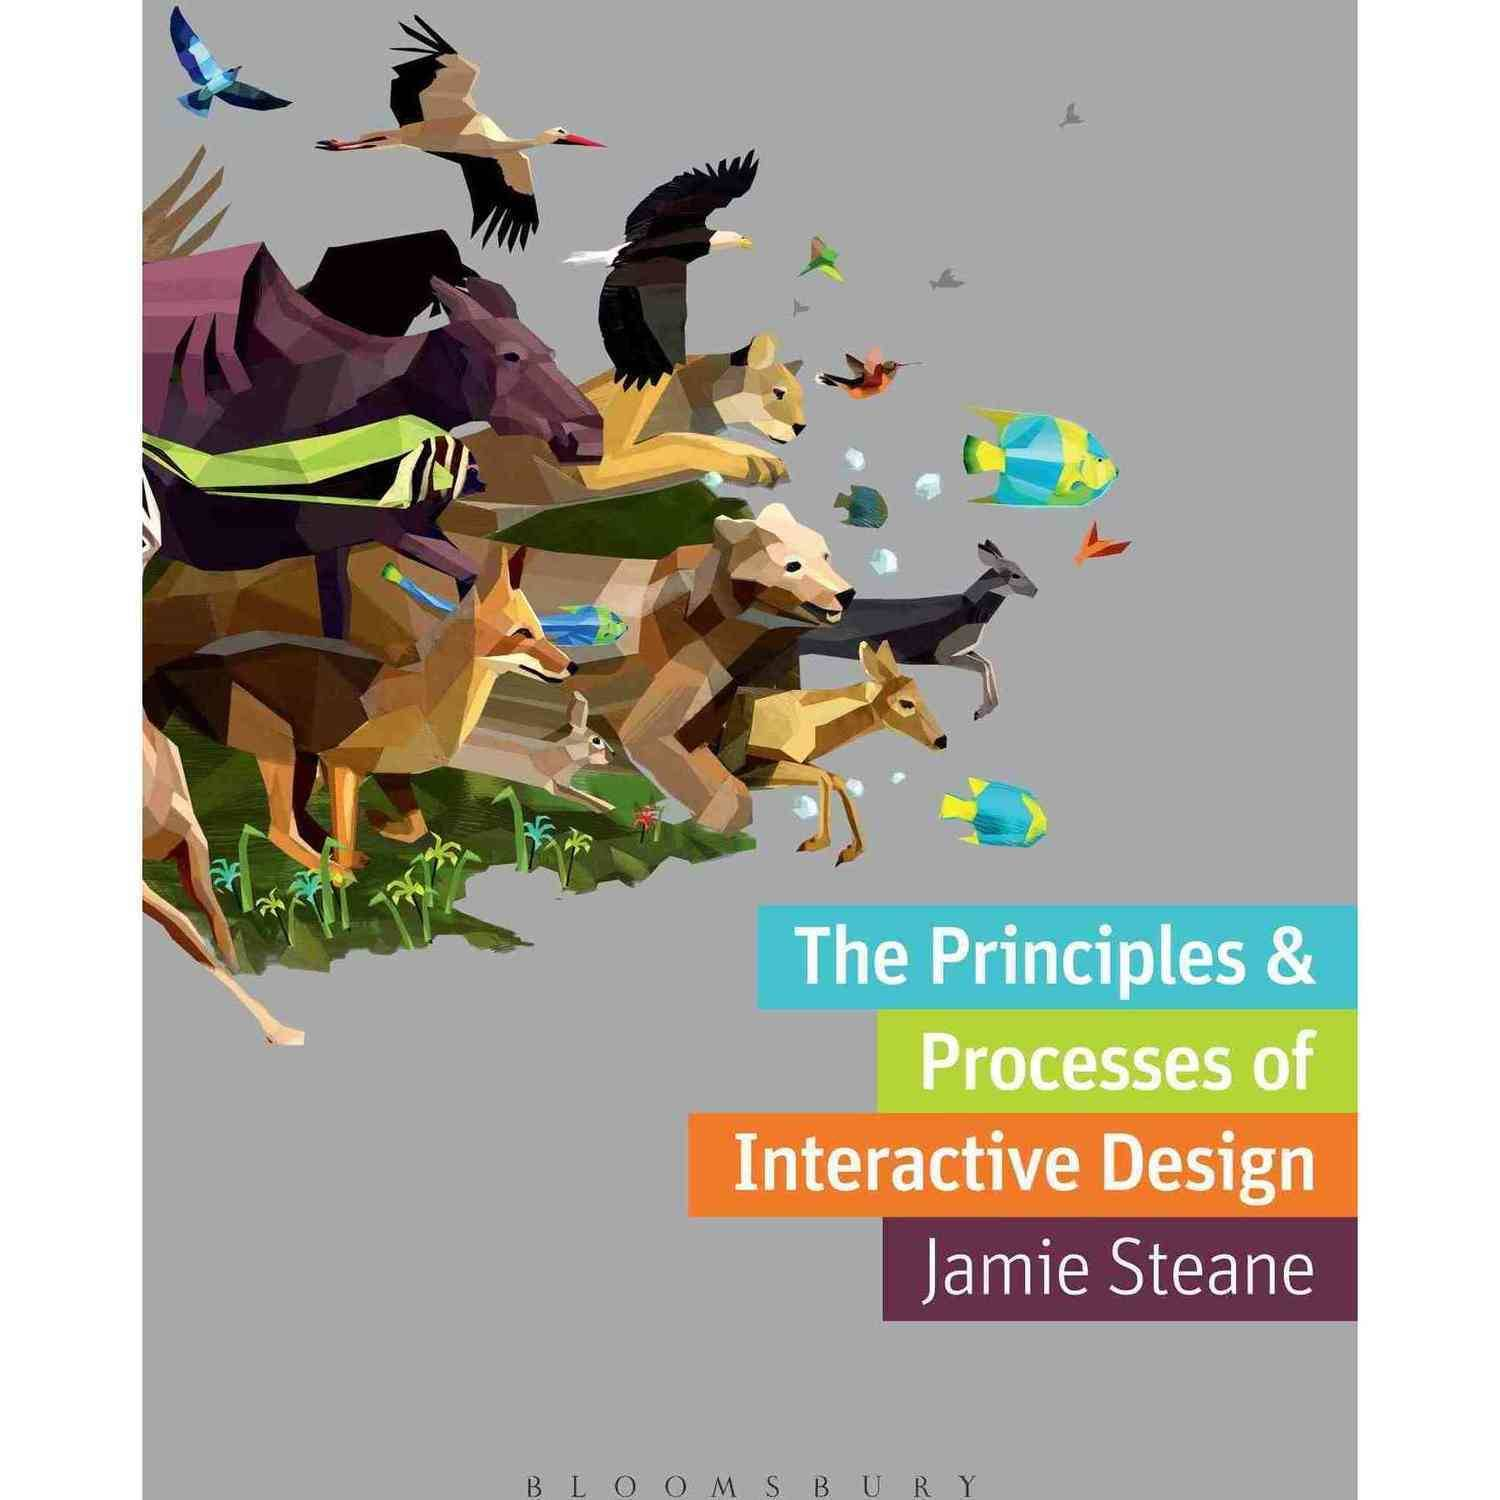 The Principles & Processes of Interactive Design